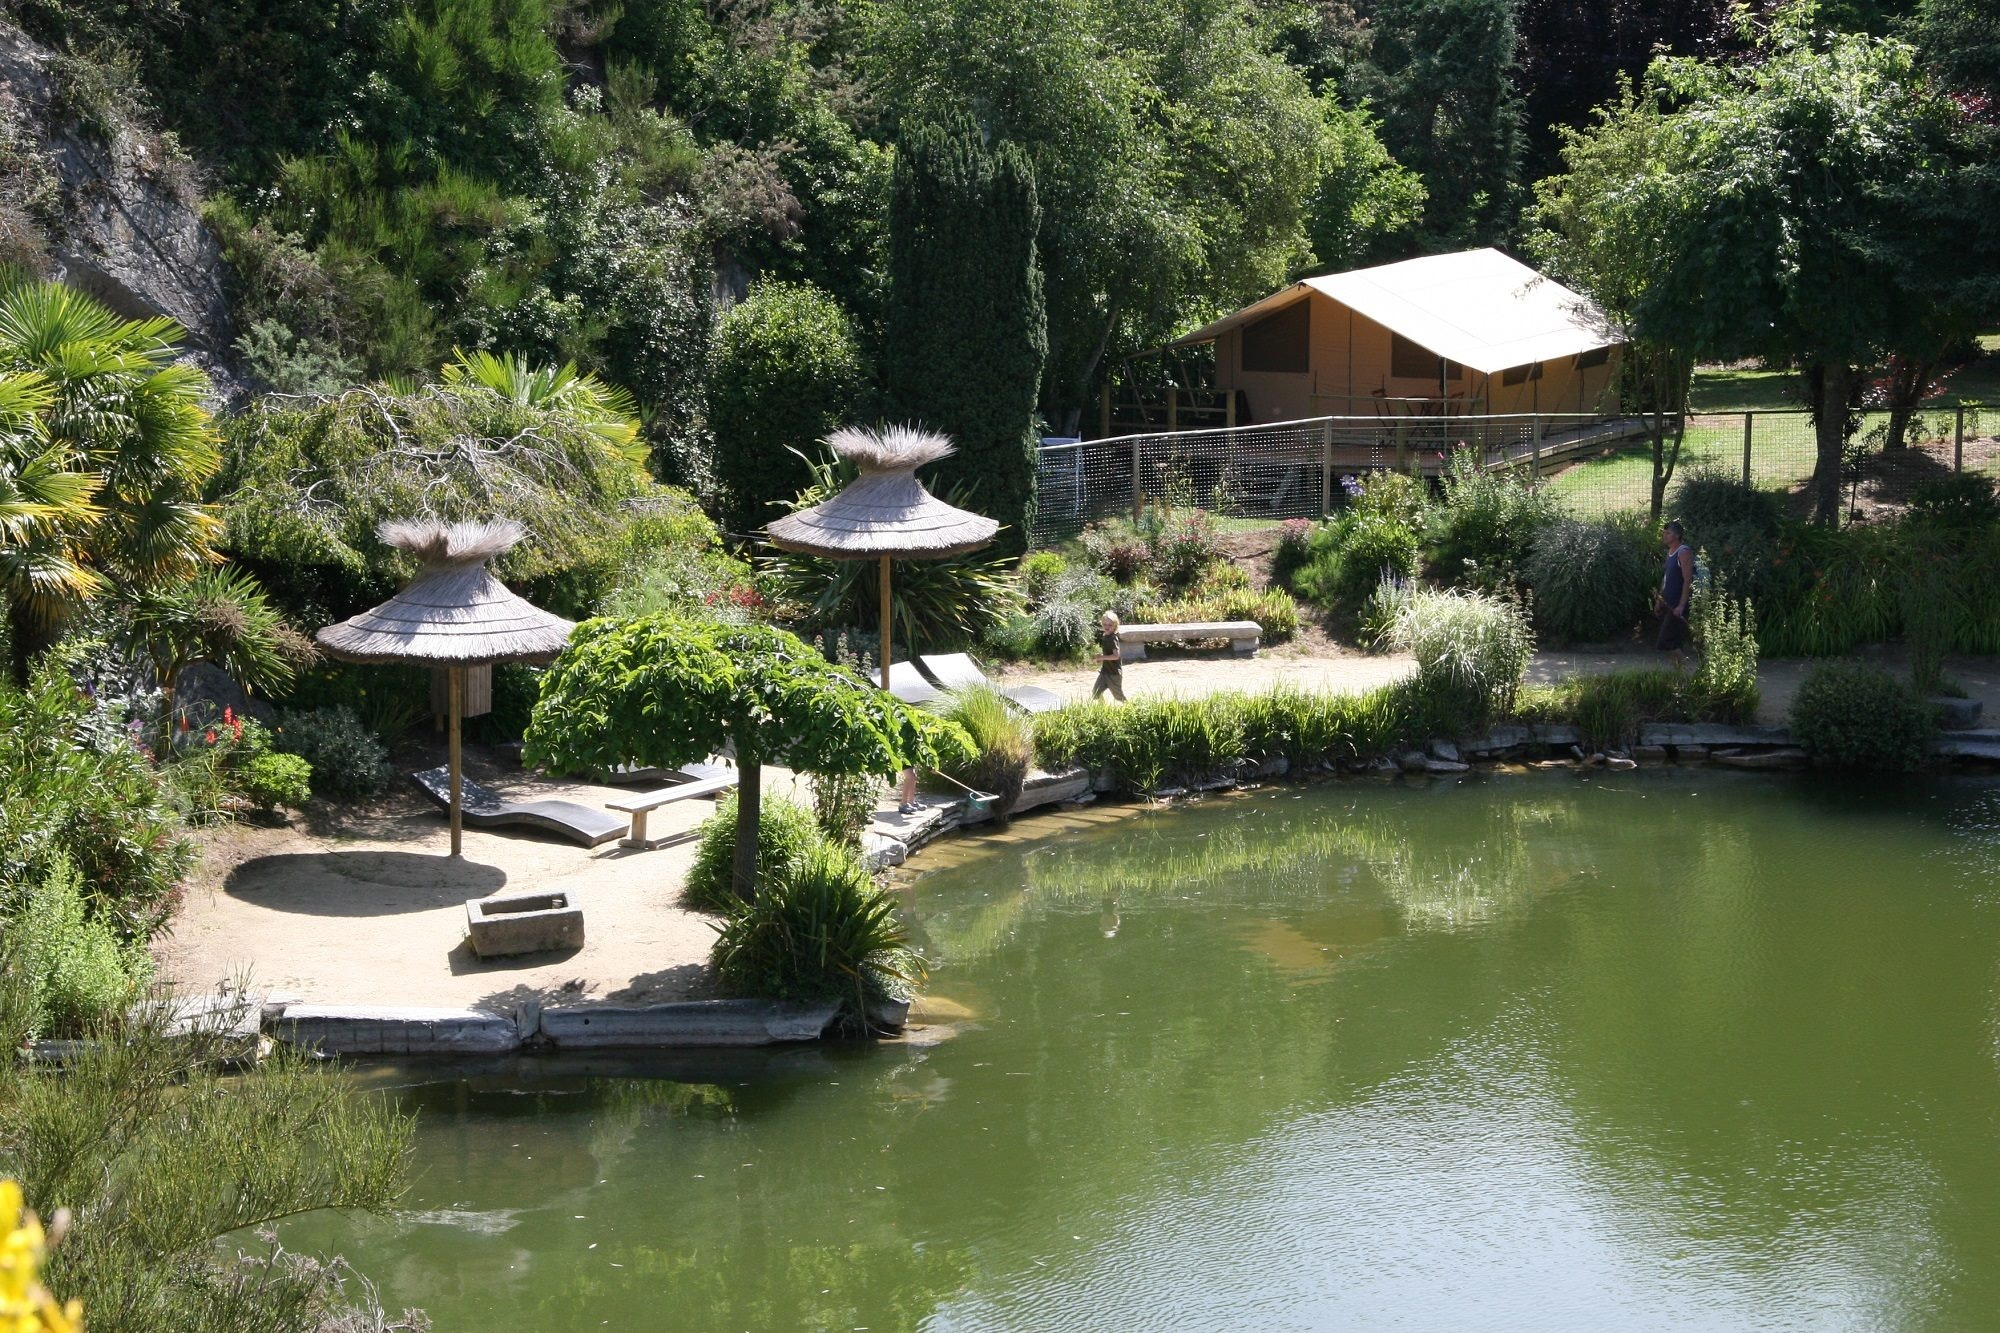 Camping Chatelet